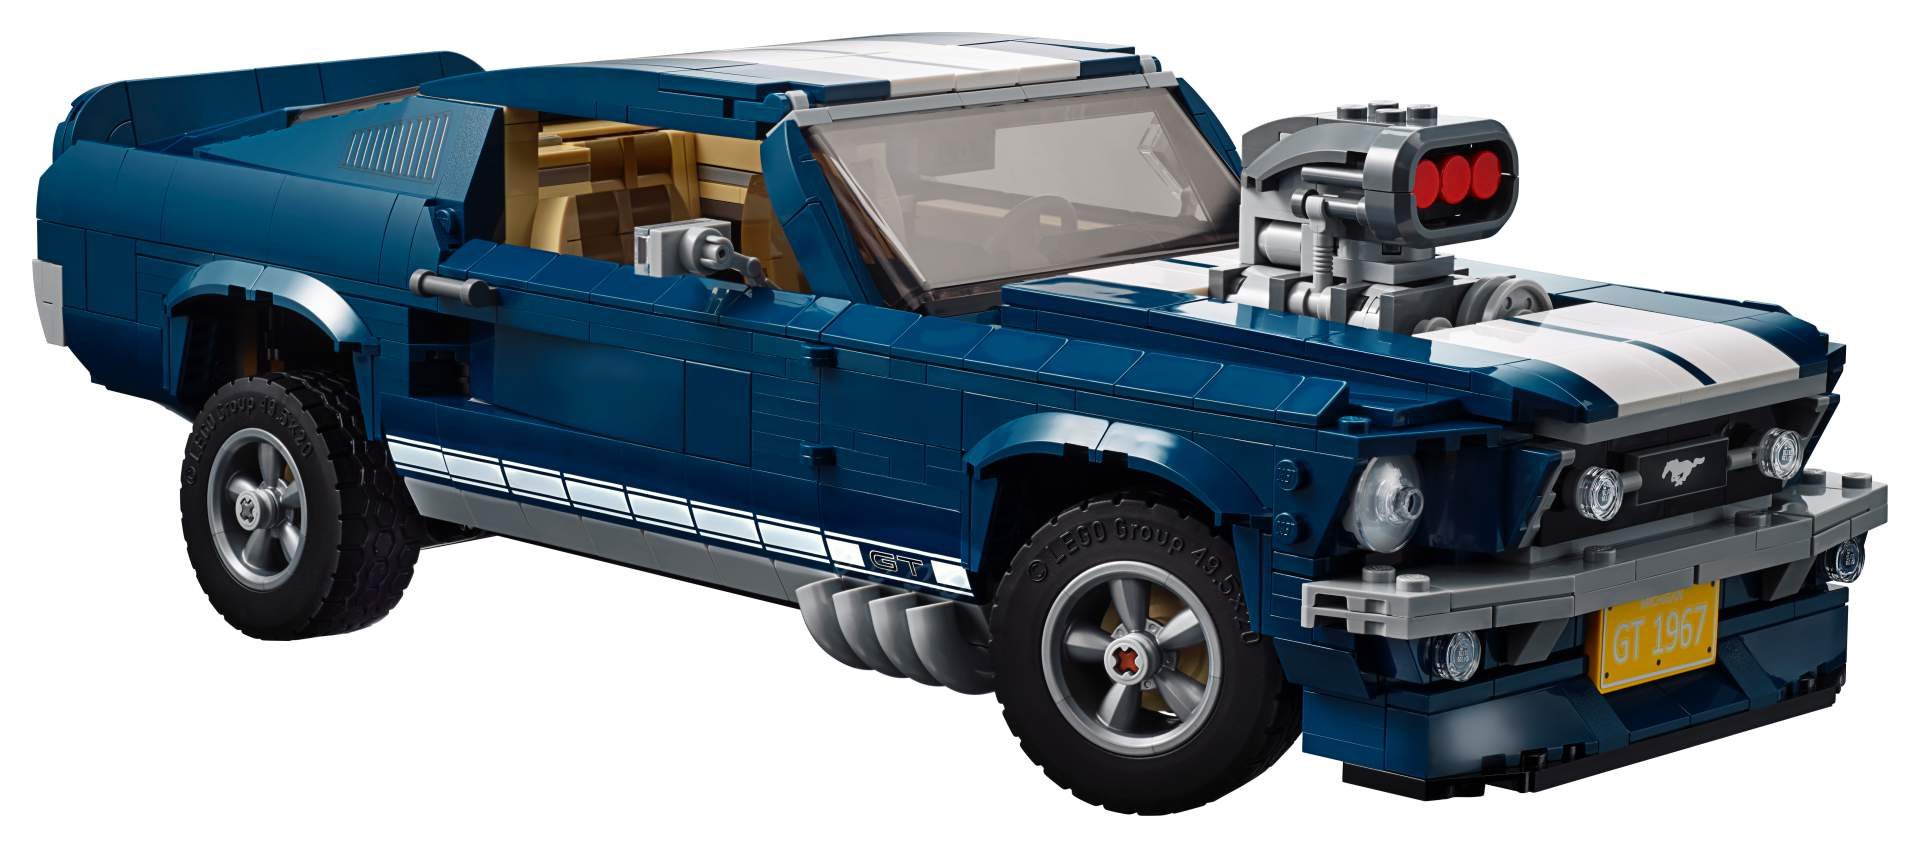 Ford Mustang GT 1967 Lego Creator Set (3)